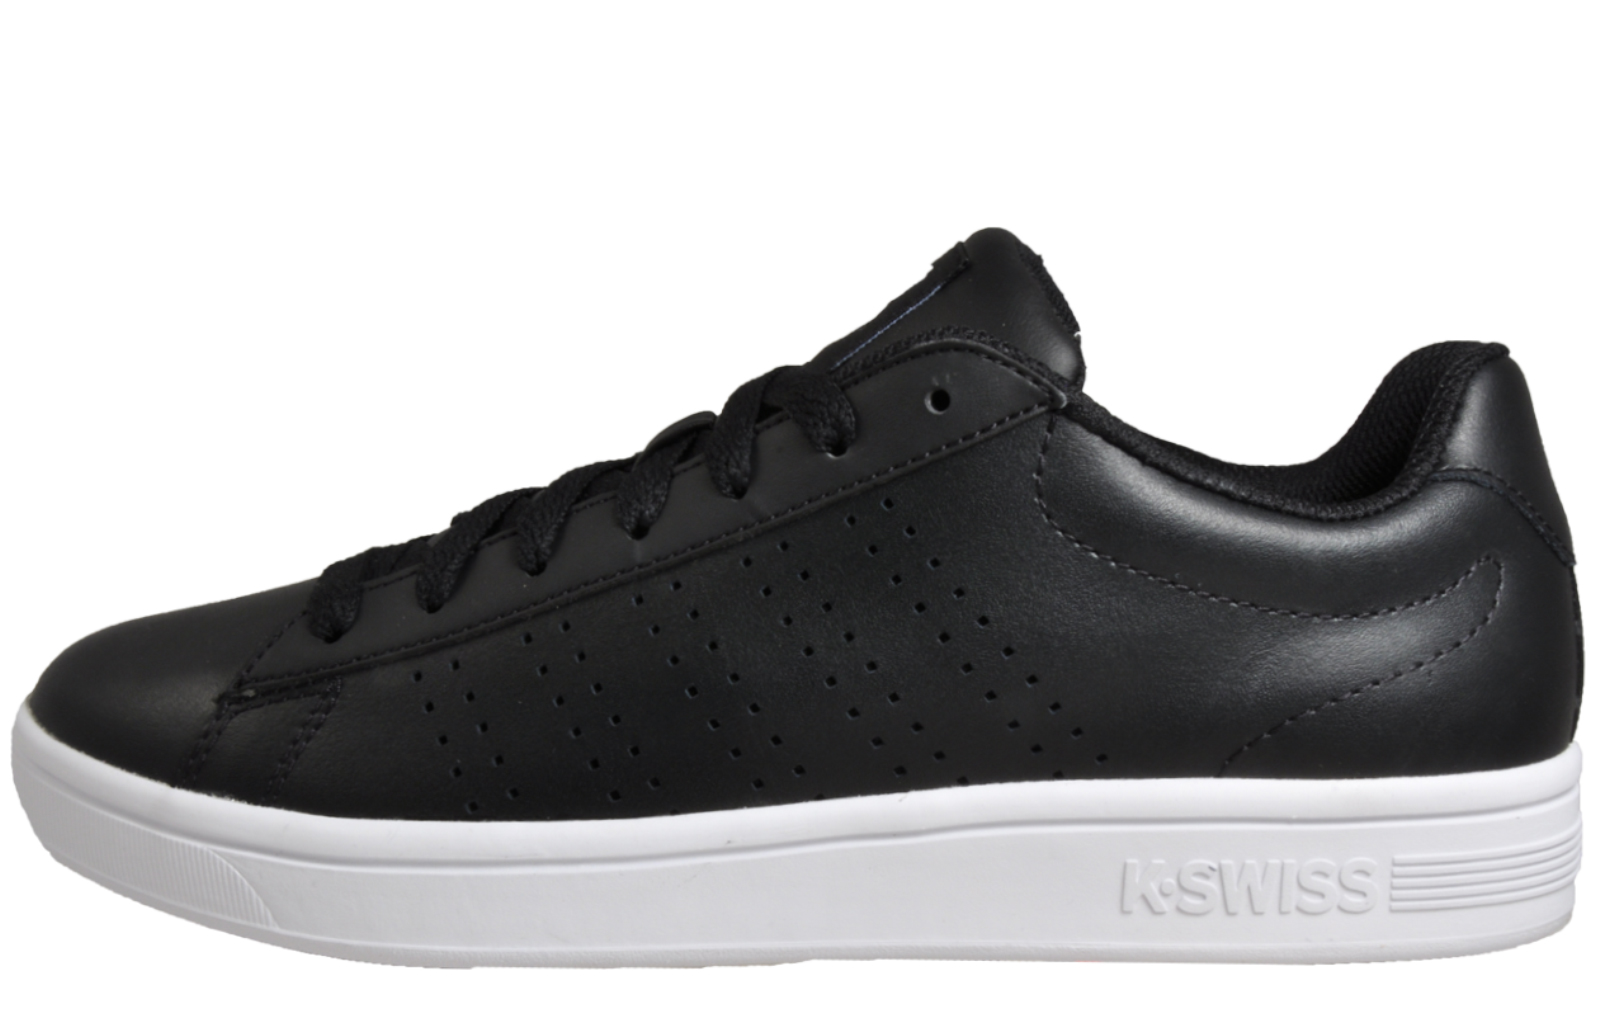 K Swiss Court Casper  - KS172767